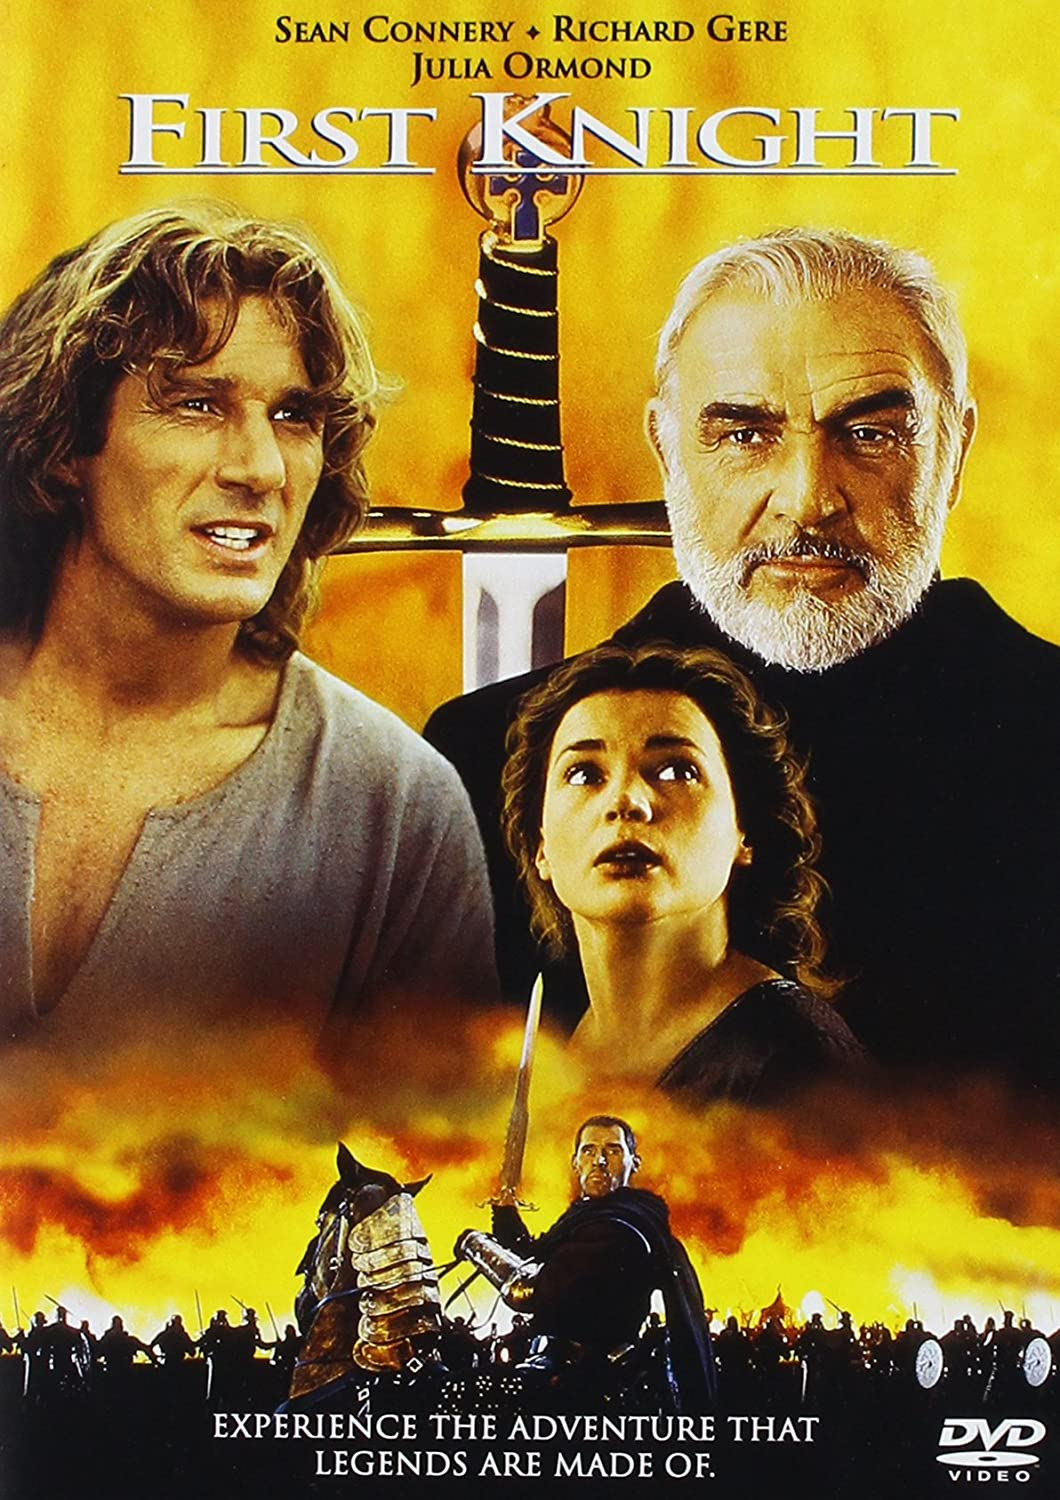 Amazon Com First Knight Sean Connery Richard Gere Julia Ormond Ben Cross Liam Cunningham Christopher Villiers Jerry Zucker Jerry Zucker Hunt Lowry Columbia Pictures Corporation First Knight Prods Ltd Movies Tv